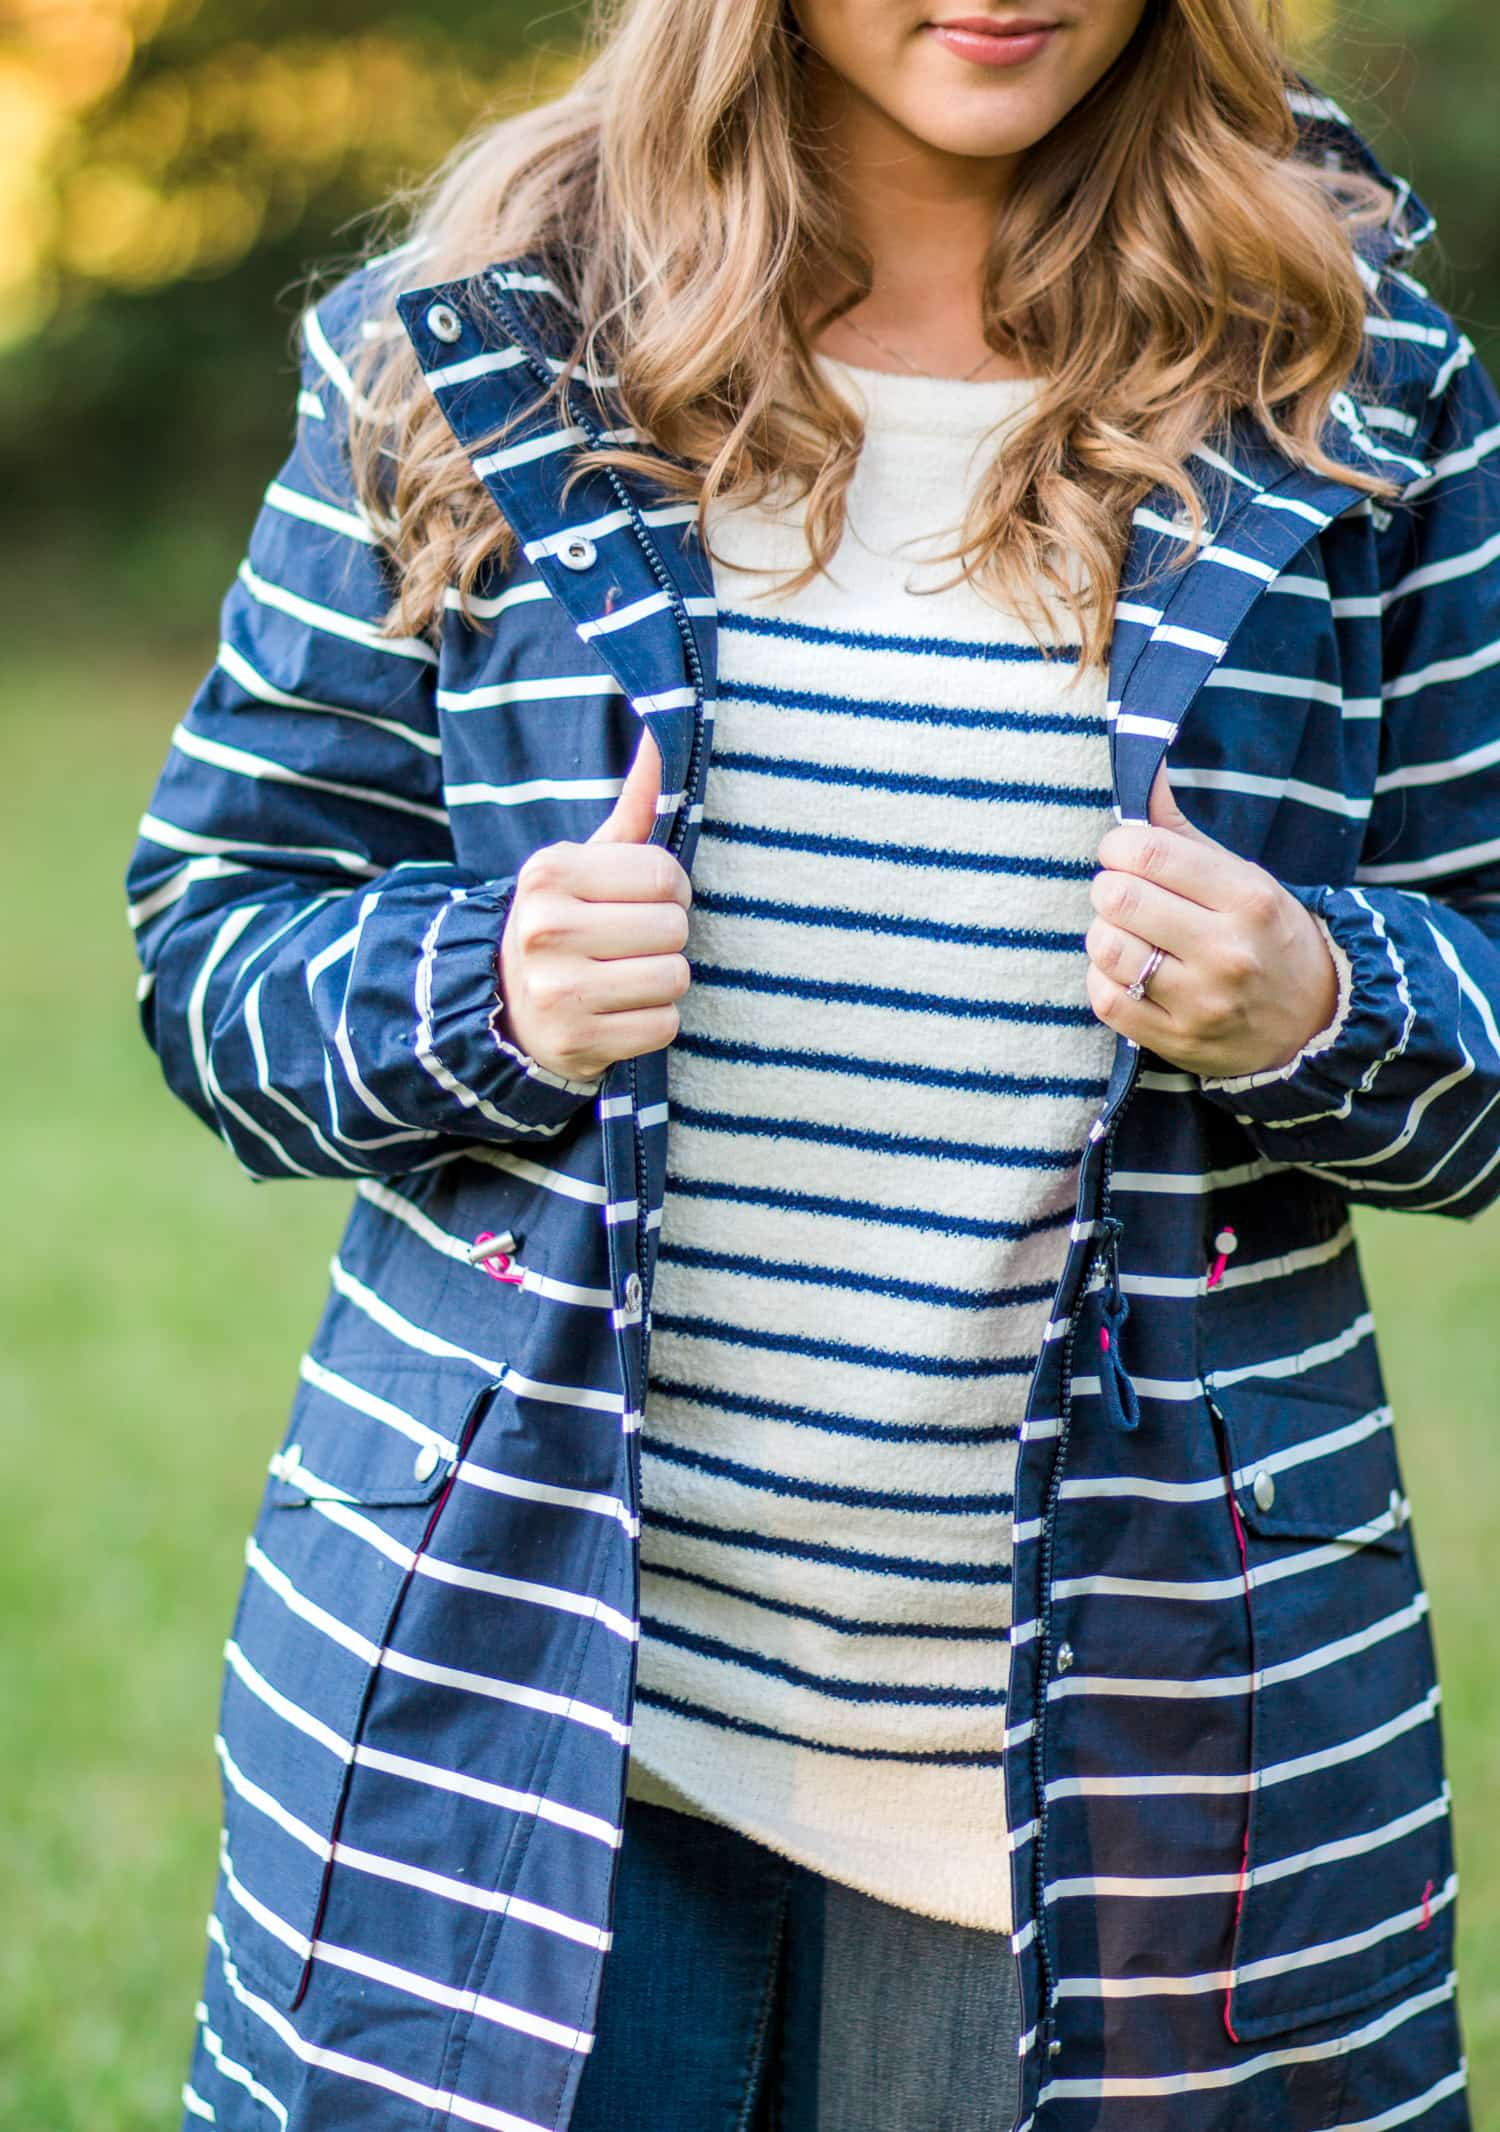 joules-rainboots-bow-striped-raincoat-striped-cozy-sweater-jeans-6550